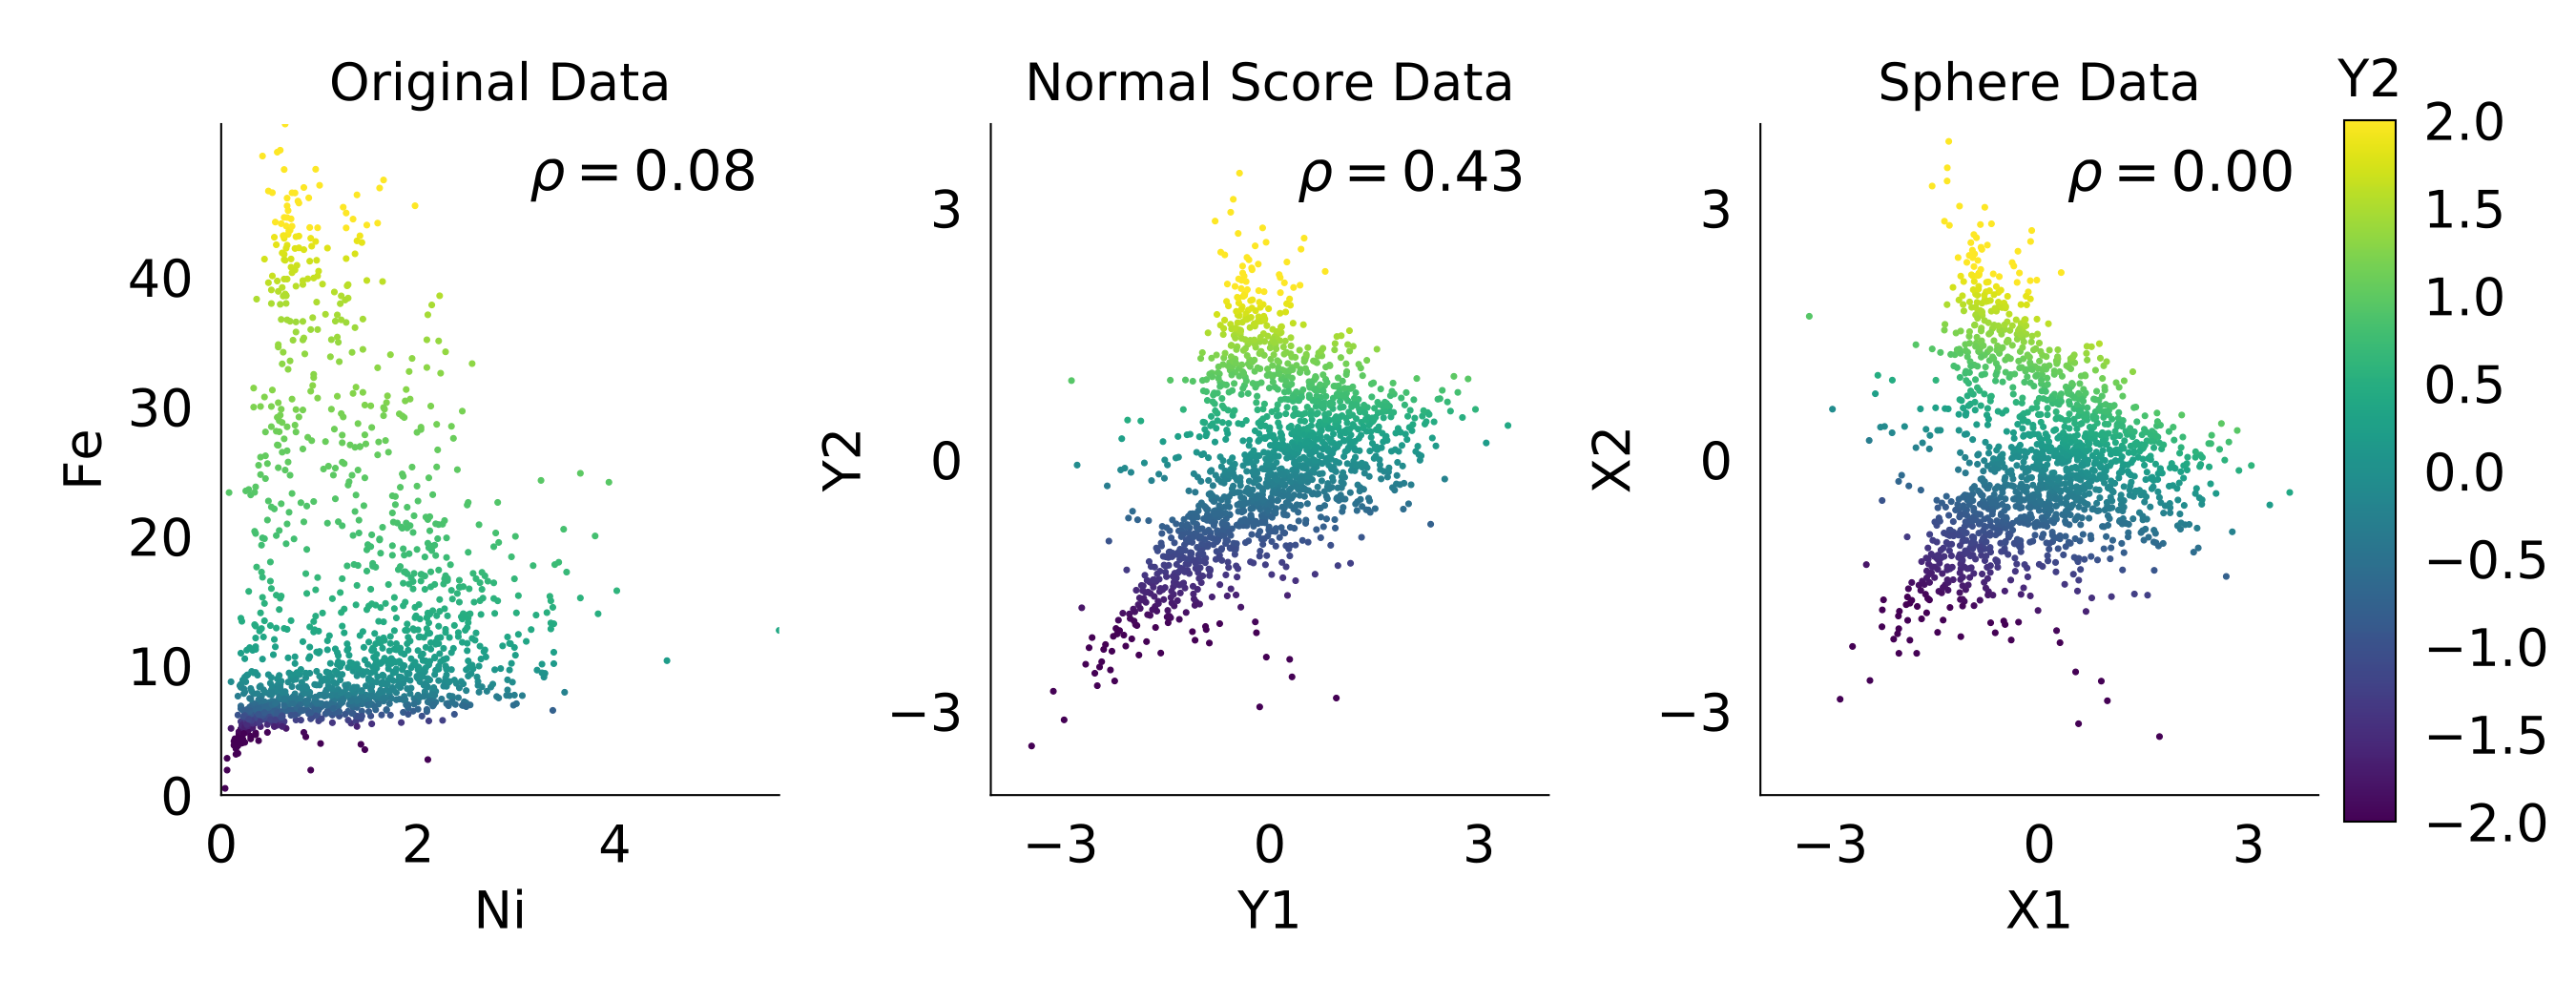 Scatter plots of the original, normal score and sphered data.